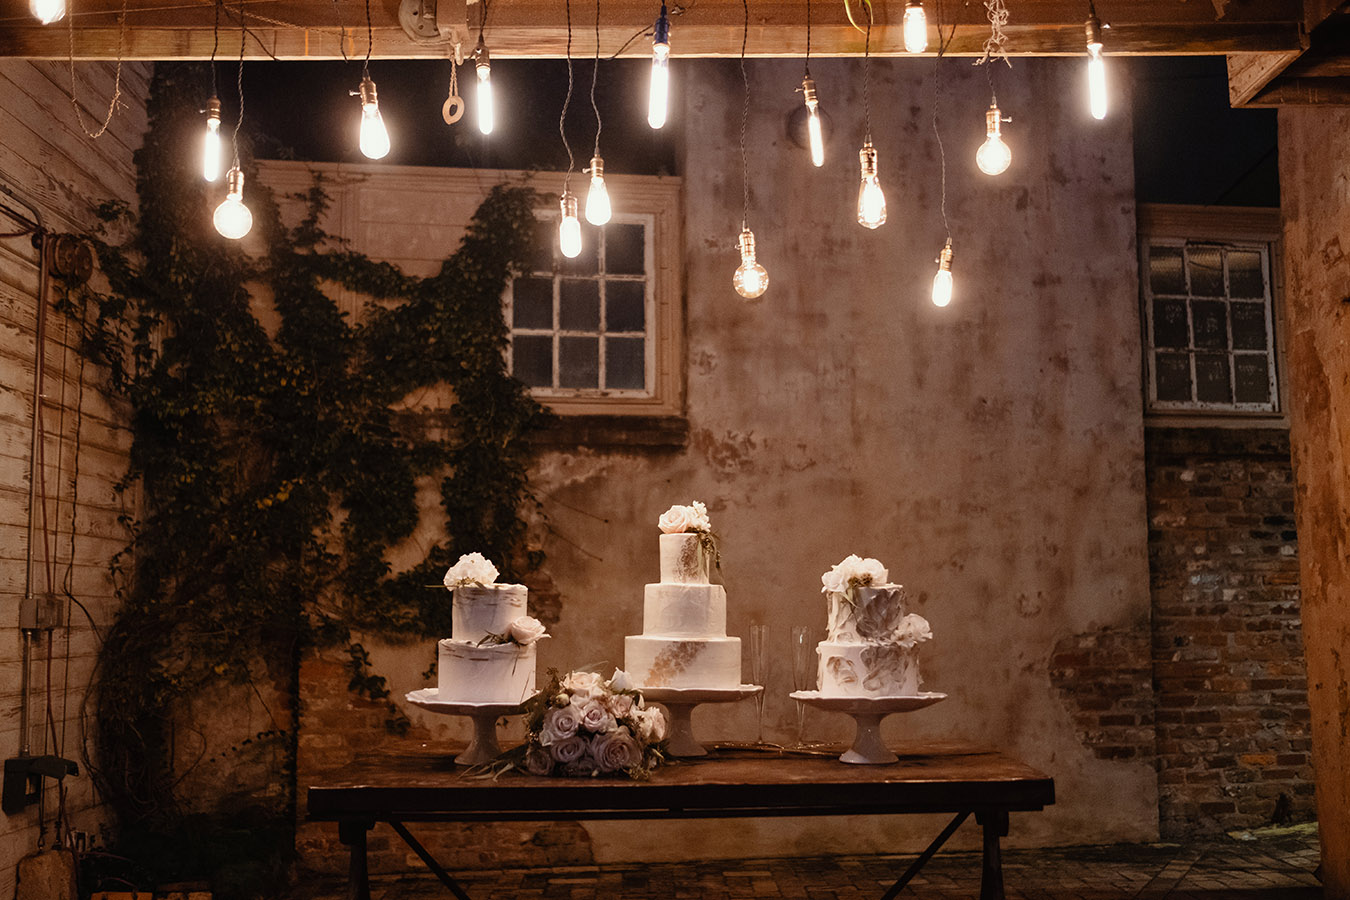 Frosted Fantasies by Nikki created three cakes that each mimicked the architectural details of the venue, such as the plaster on the wall behind the cake table.